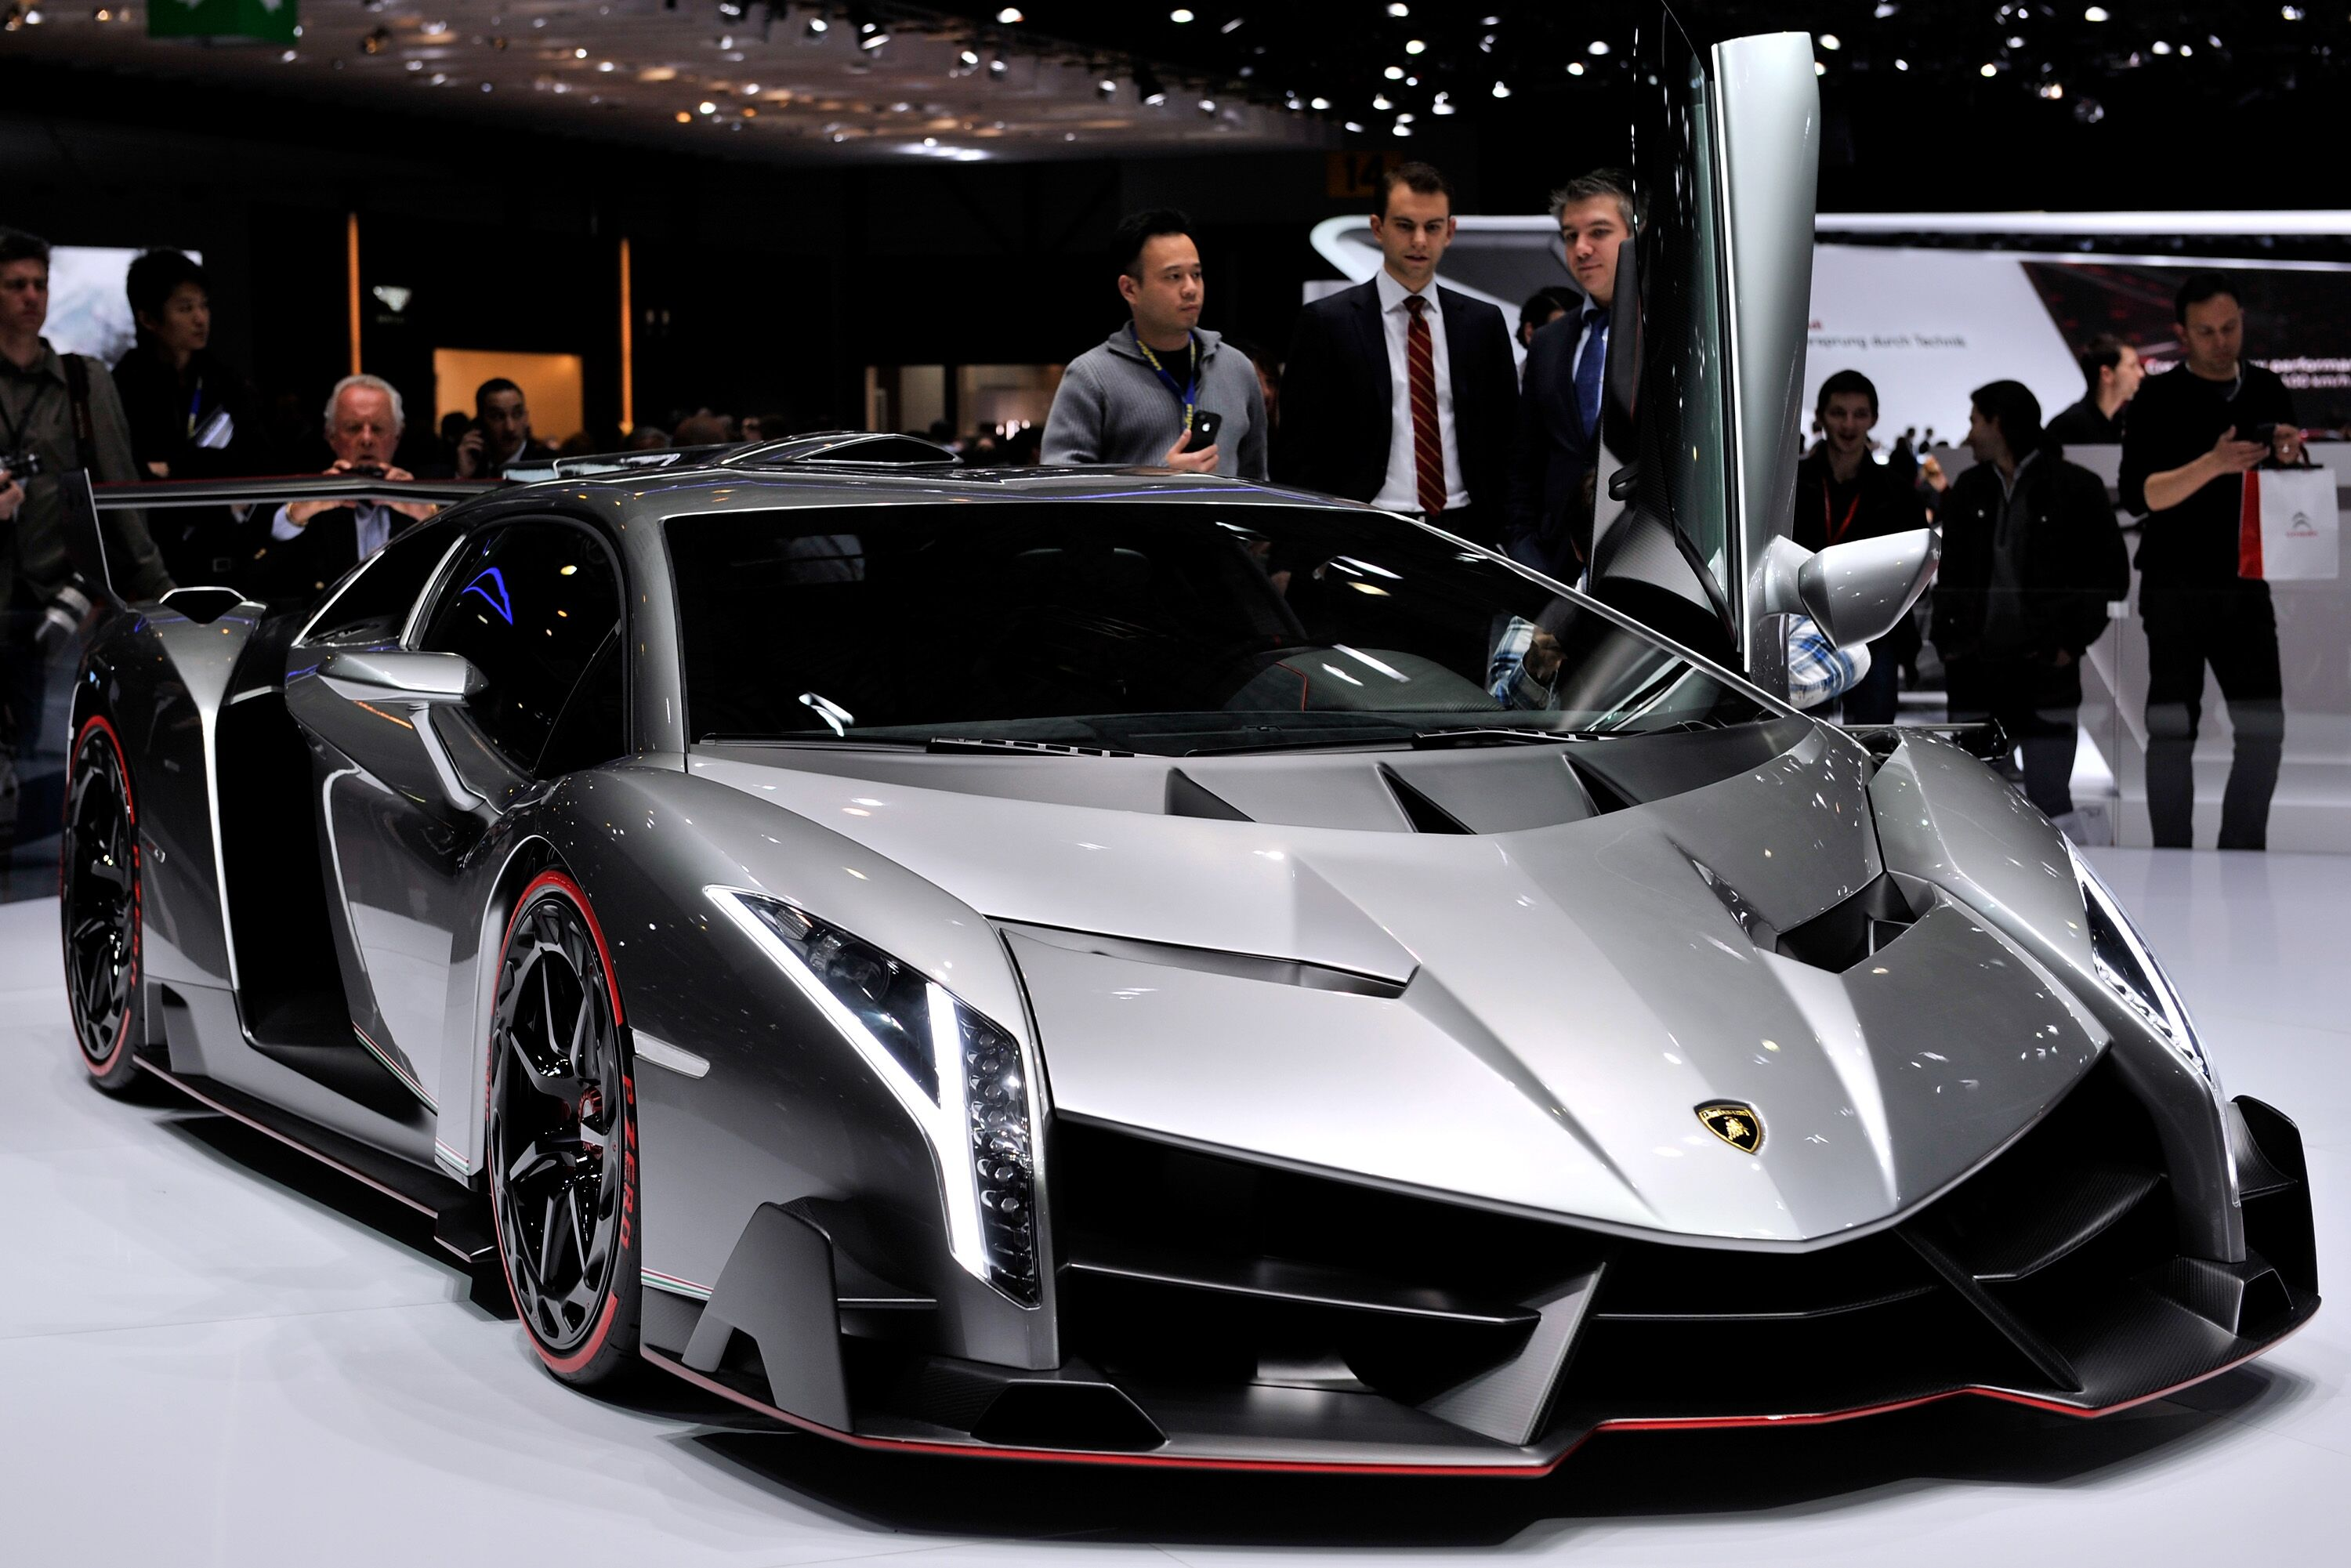 ultra rare lamborghini veneno coupe for sale at 9 4 million. Black Bedroom Furniture Sets. Home Design Ideas